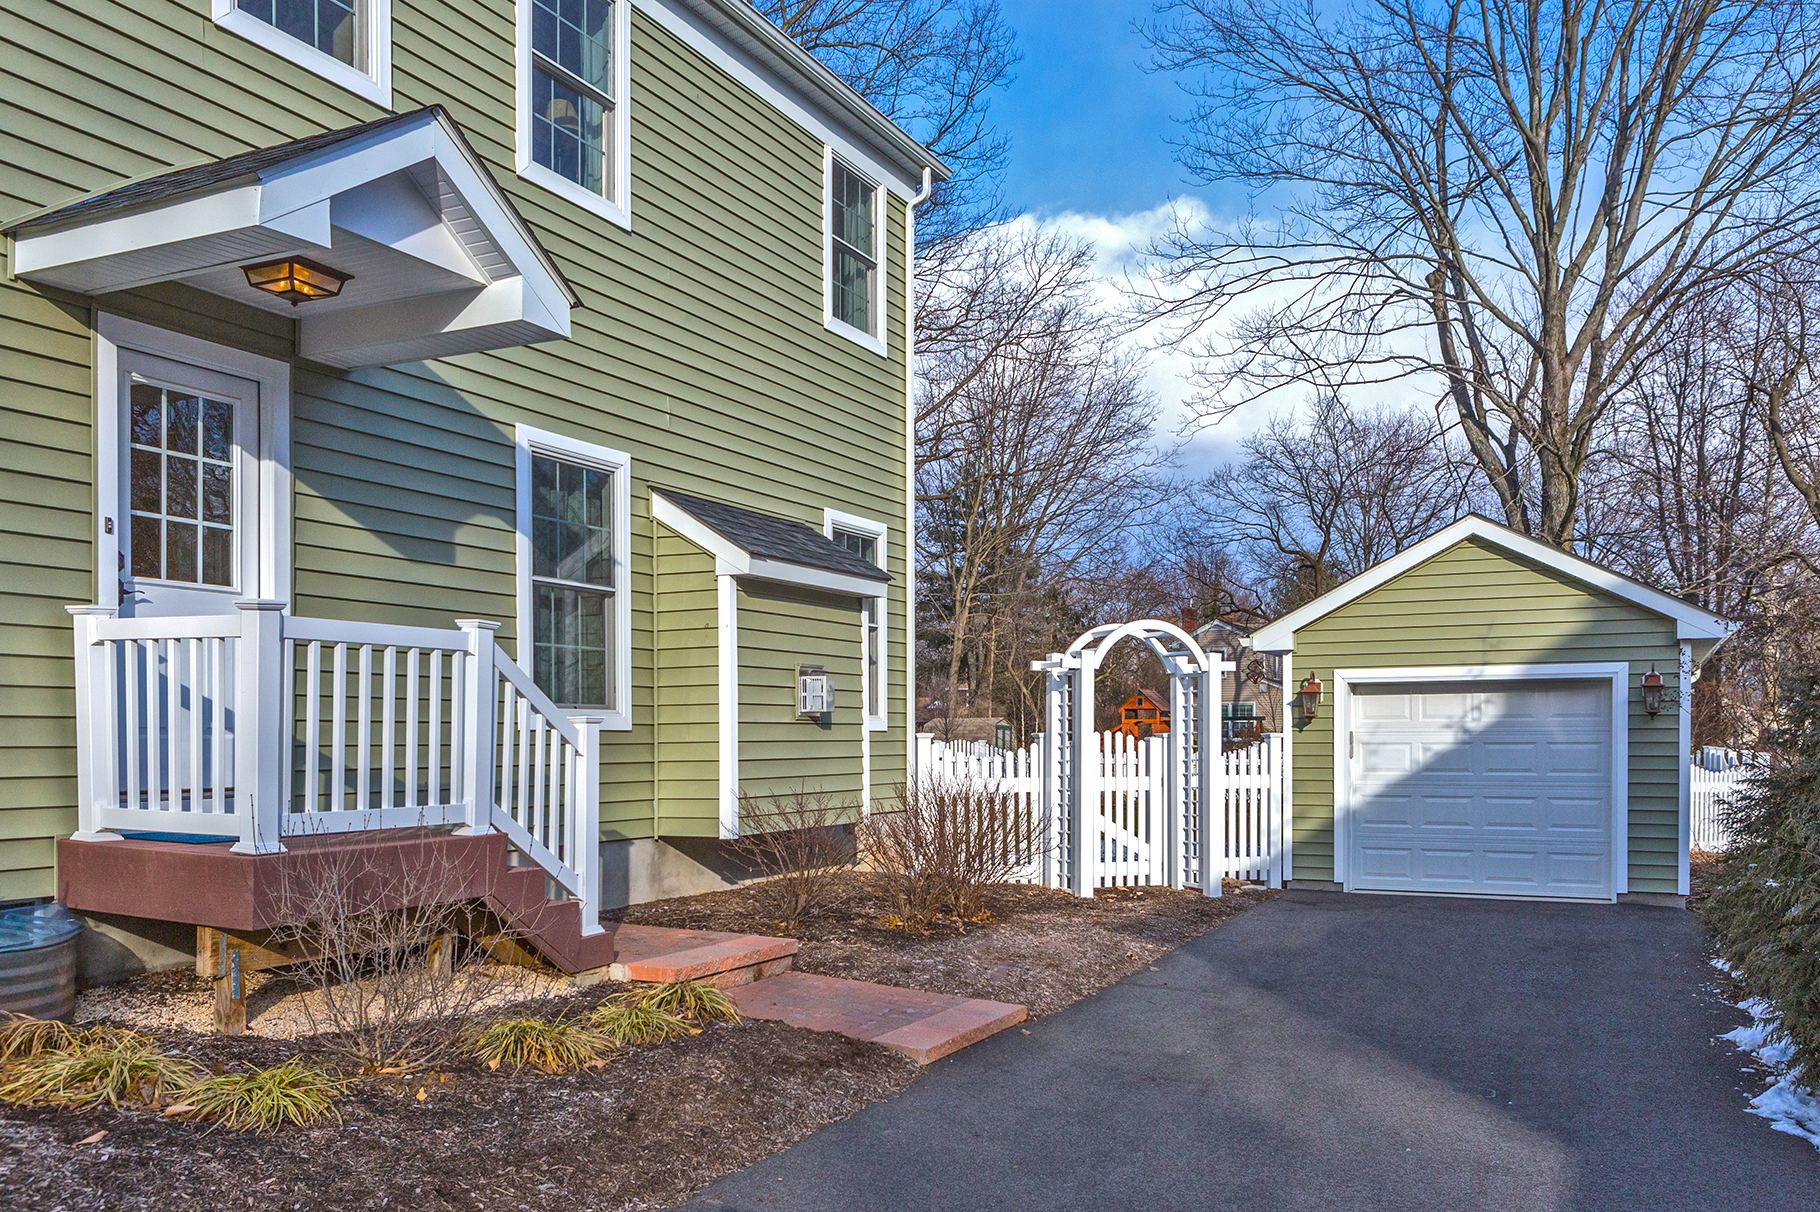 Additional photo for property listing at The Very Best Of Pennington 309 Hale Street Pennington, Нью-Джерси 08534 Соединенные Штаты